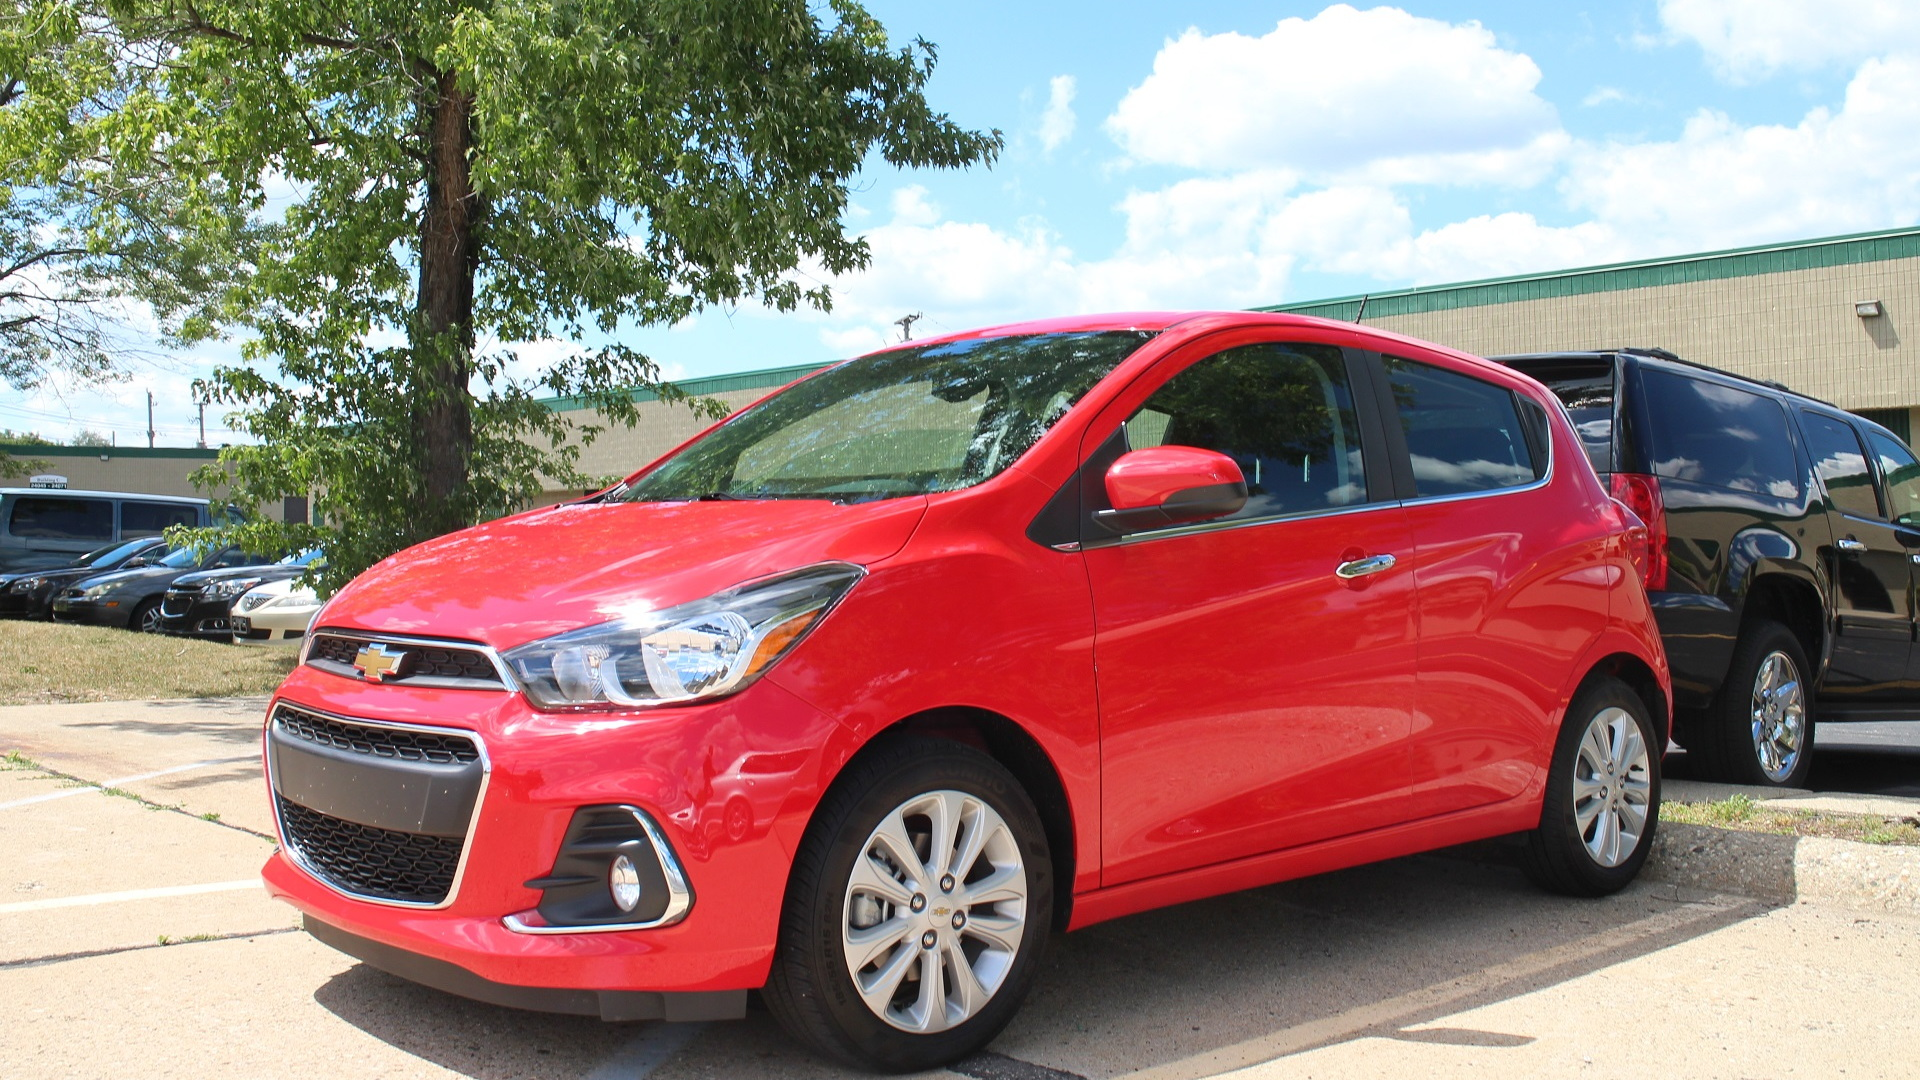 2016 Chevrolet Spark, test drive outside Detroit, July 2016